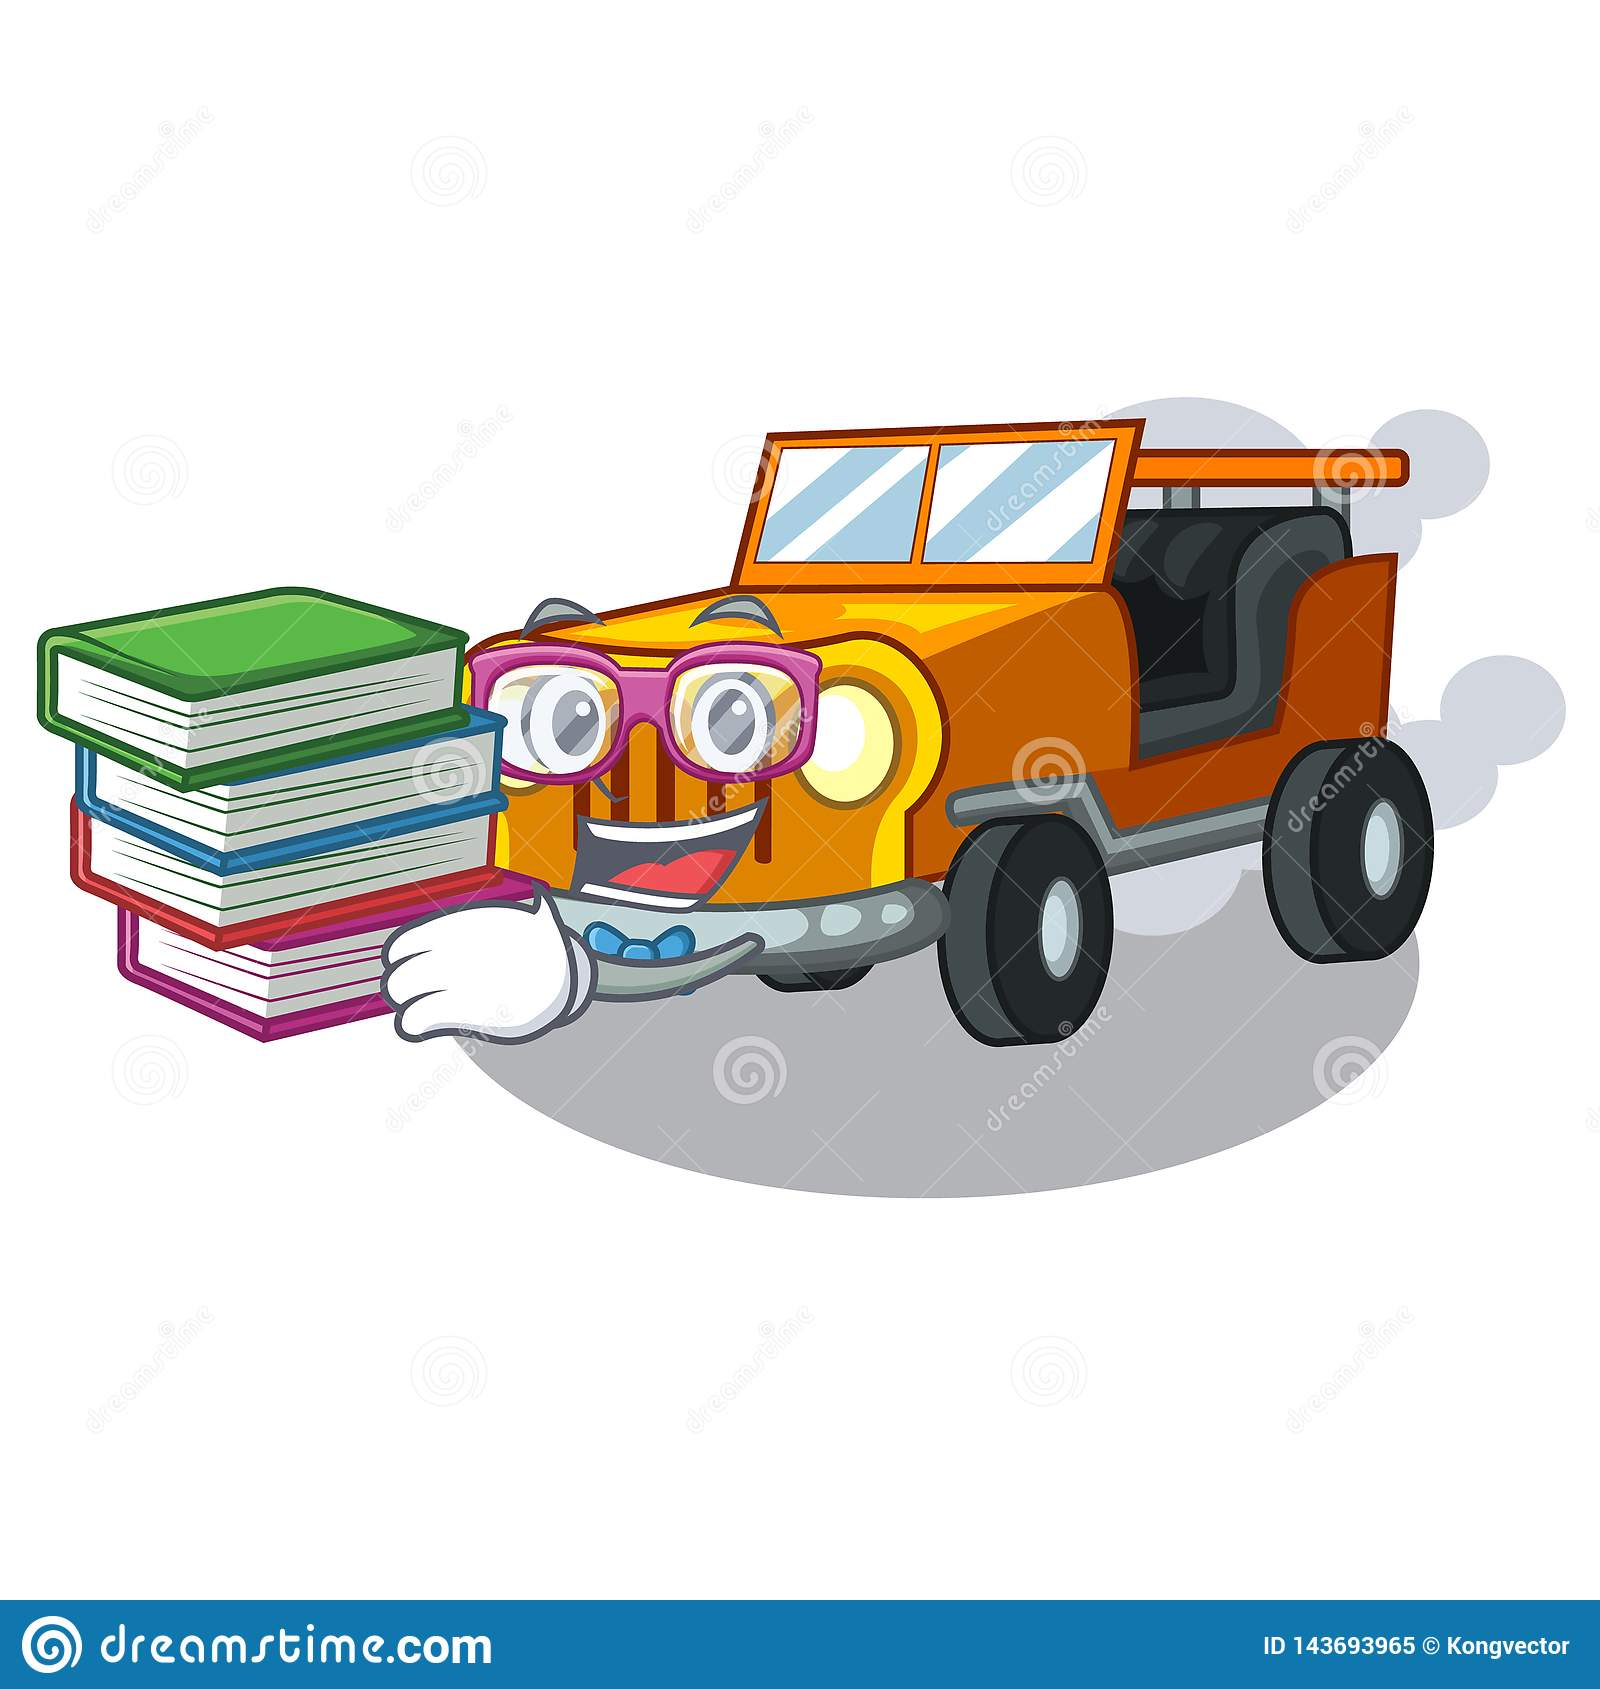 Student with book jeep cartoon car in front clemency